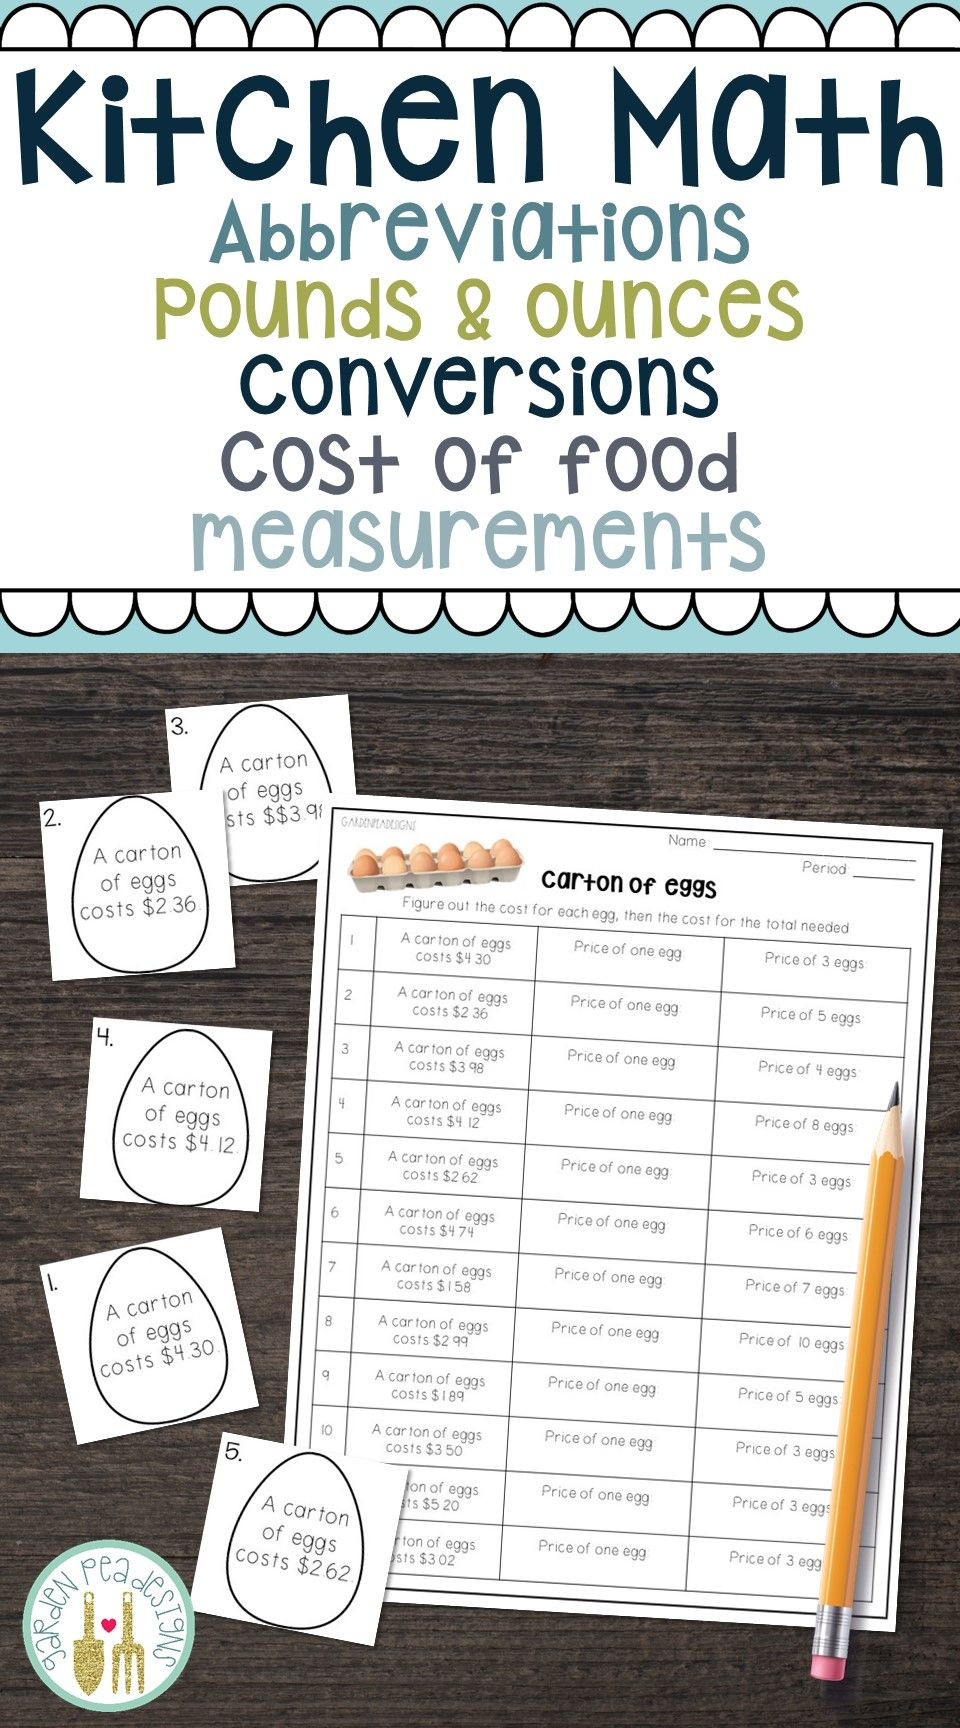 Kitchen Math Measuring Answers $5 00 Teach Kitchen Abbreviations How to Convert Pounds to